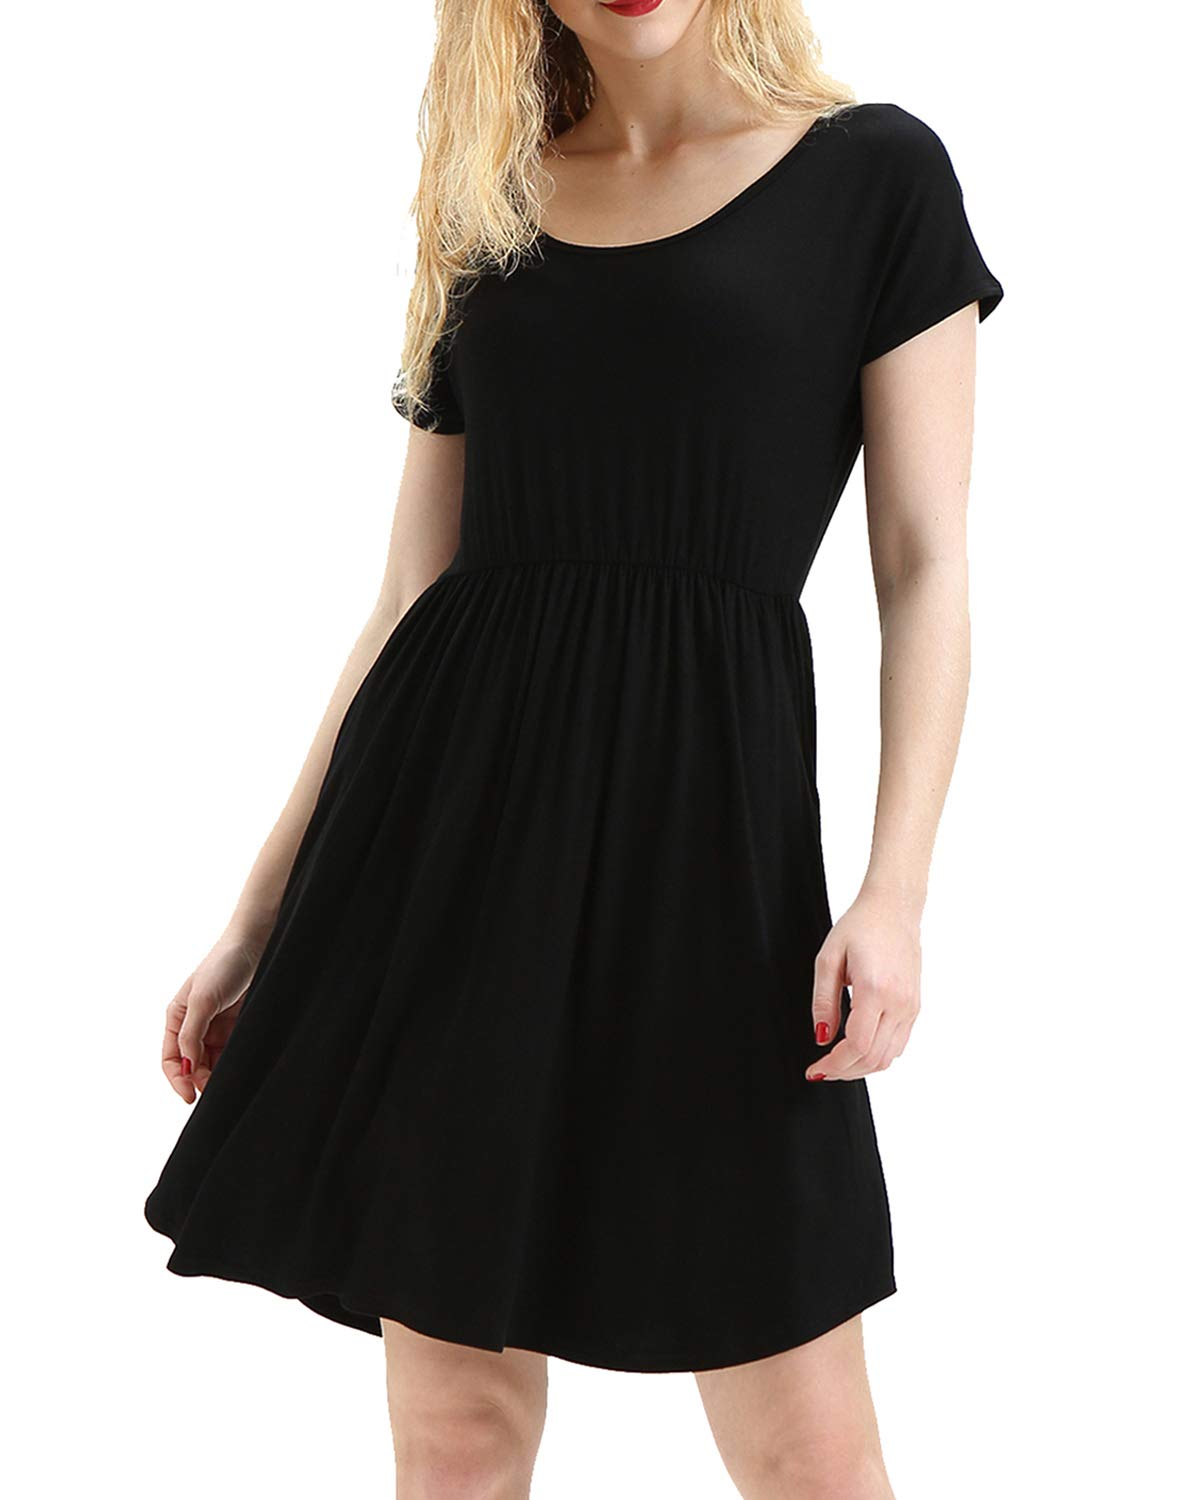 deesdail Mini Dresses for Women Casual, Ladies Round Neck Short Sleeve Midi Dress Swing Classic Long Tunic with Pockets Knee Length Shirts Black L